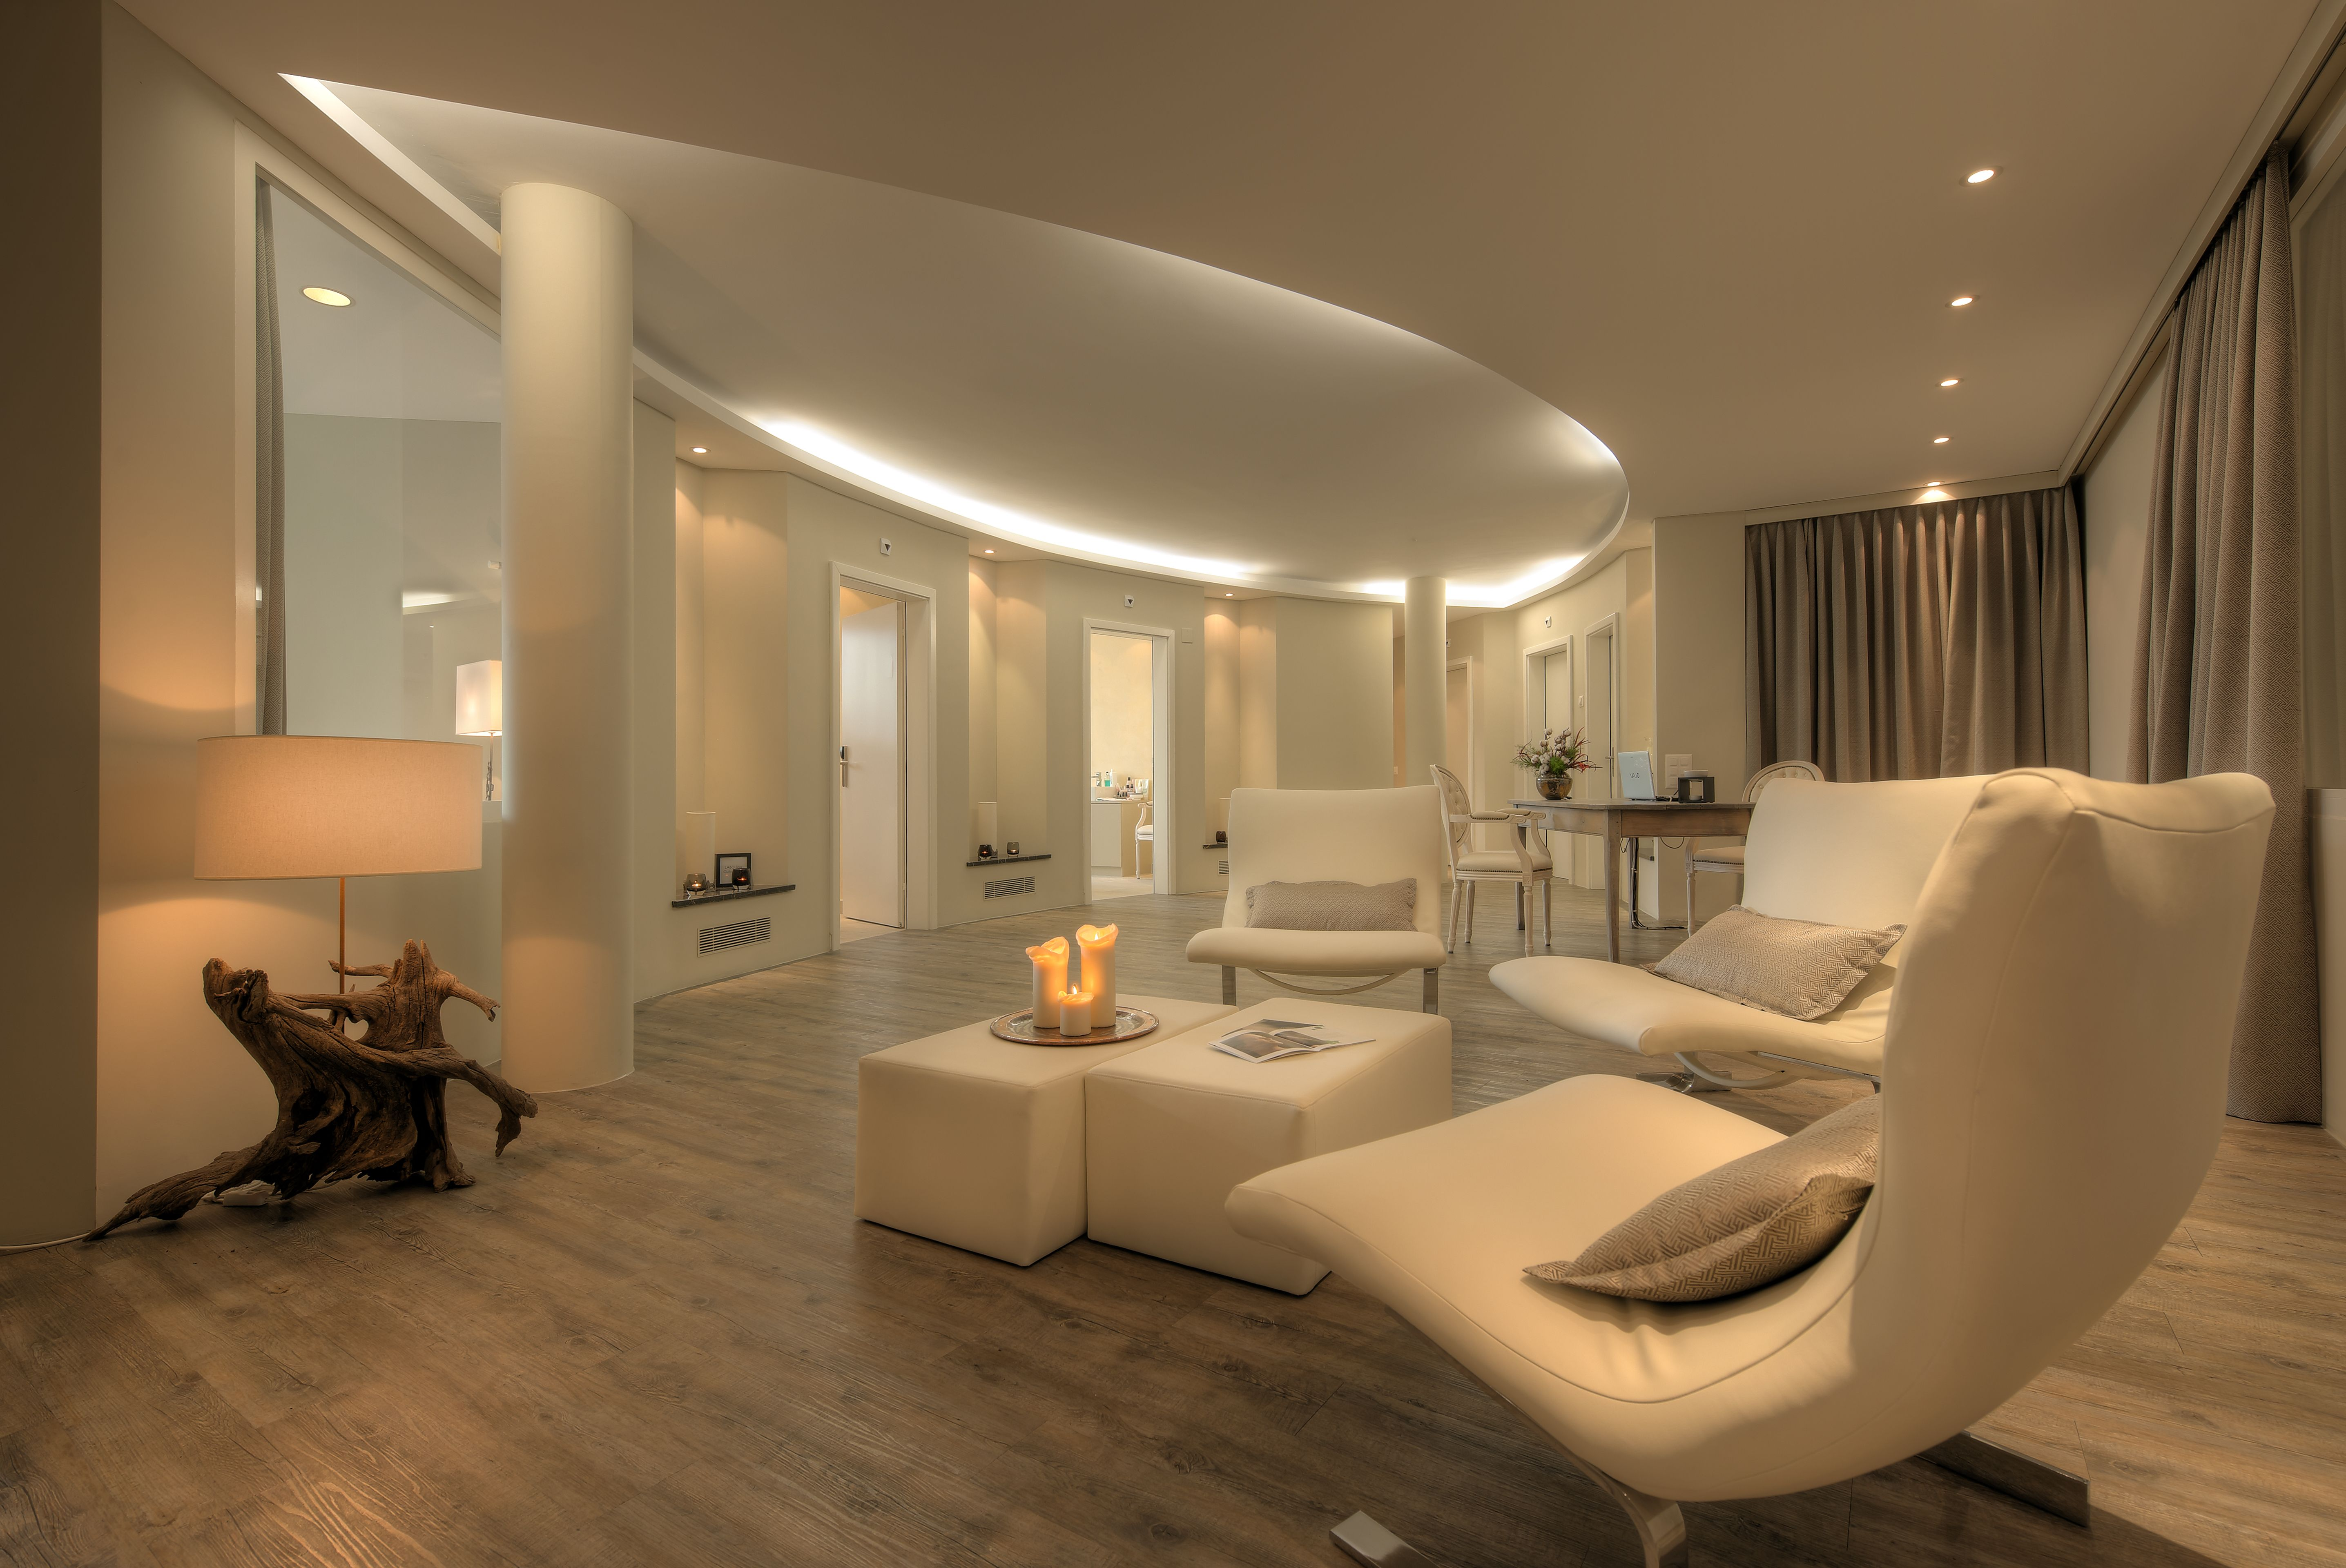 opening spa design interior ay boutique hair young studio annie